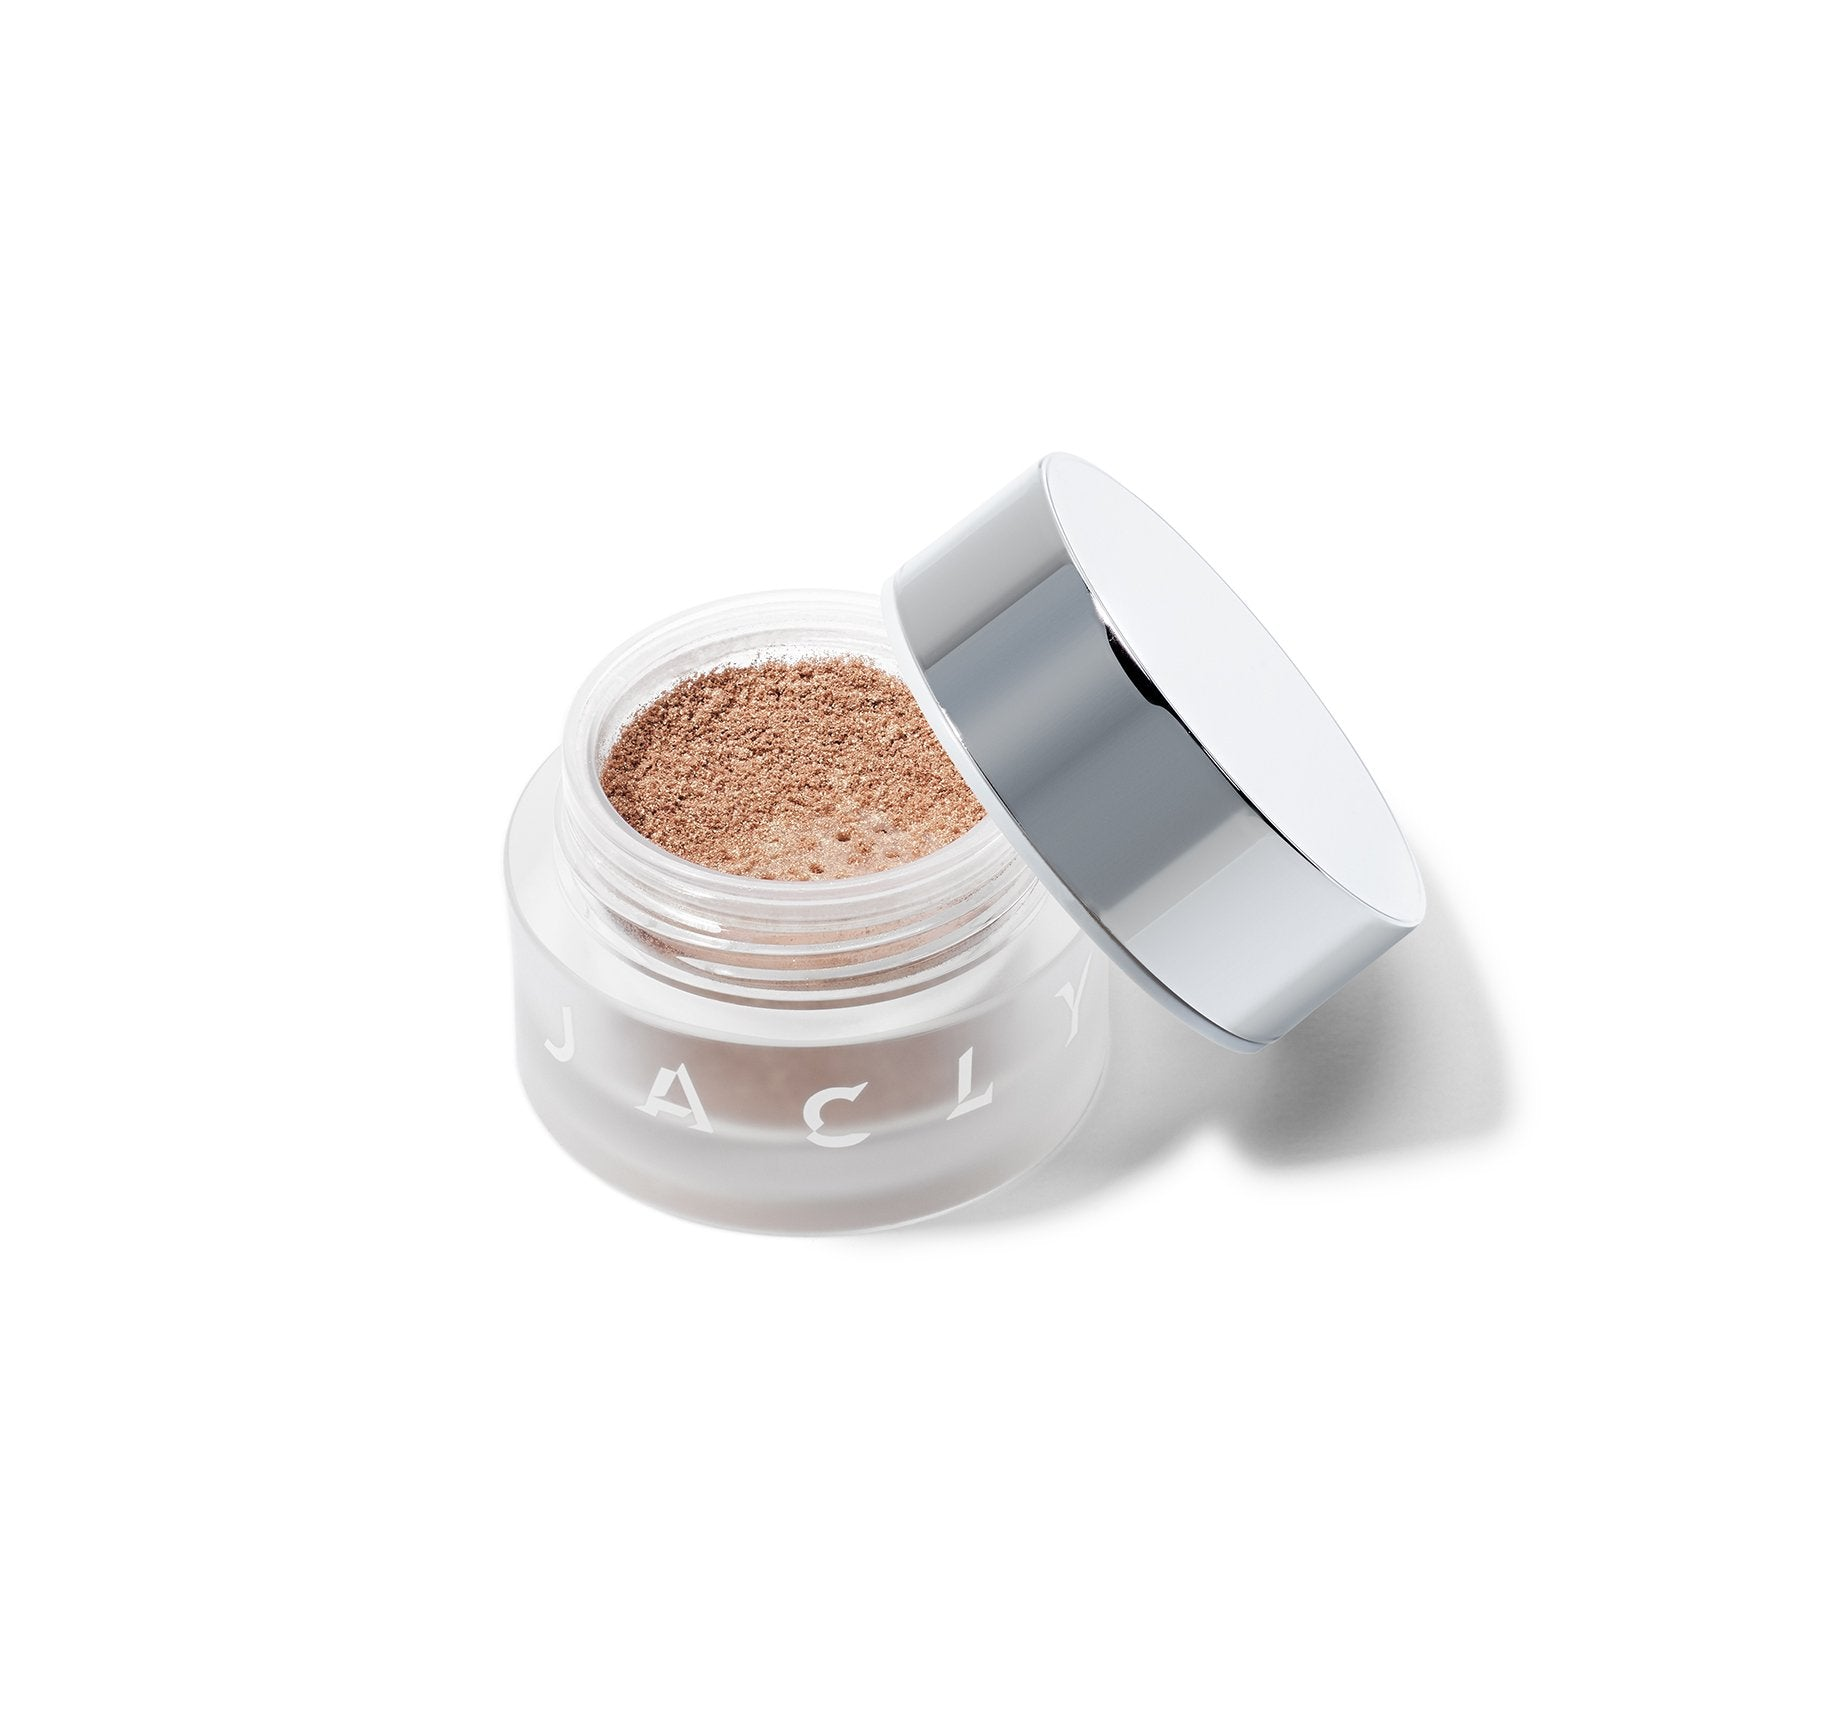 BEAMING LIGHT LOOSE HIGHLIGHTER - BOMB, view larger image